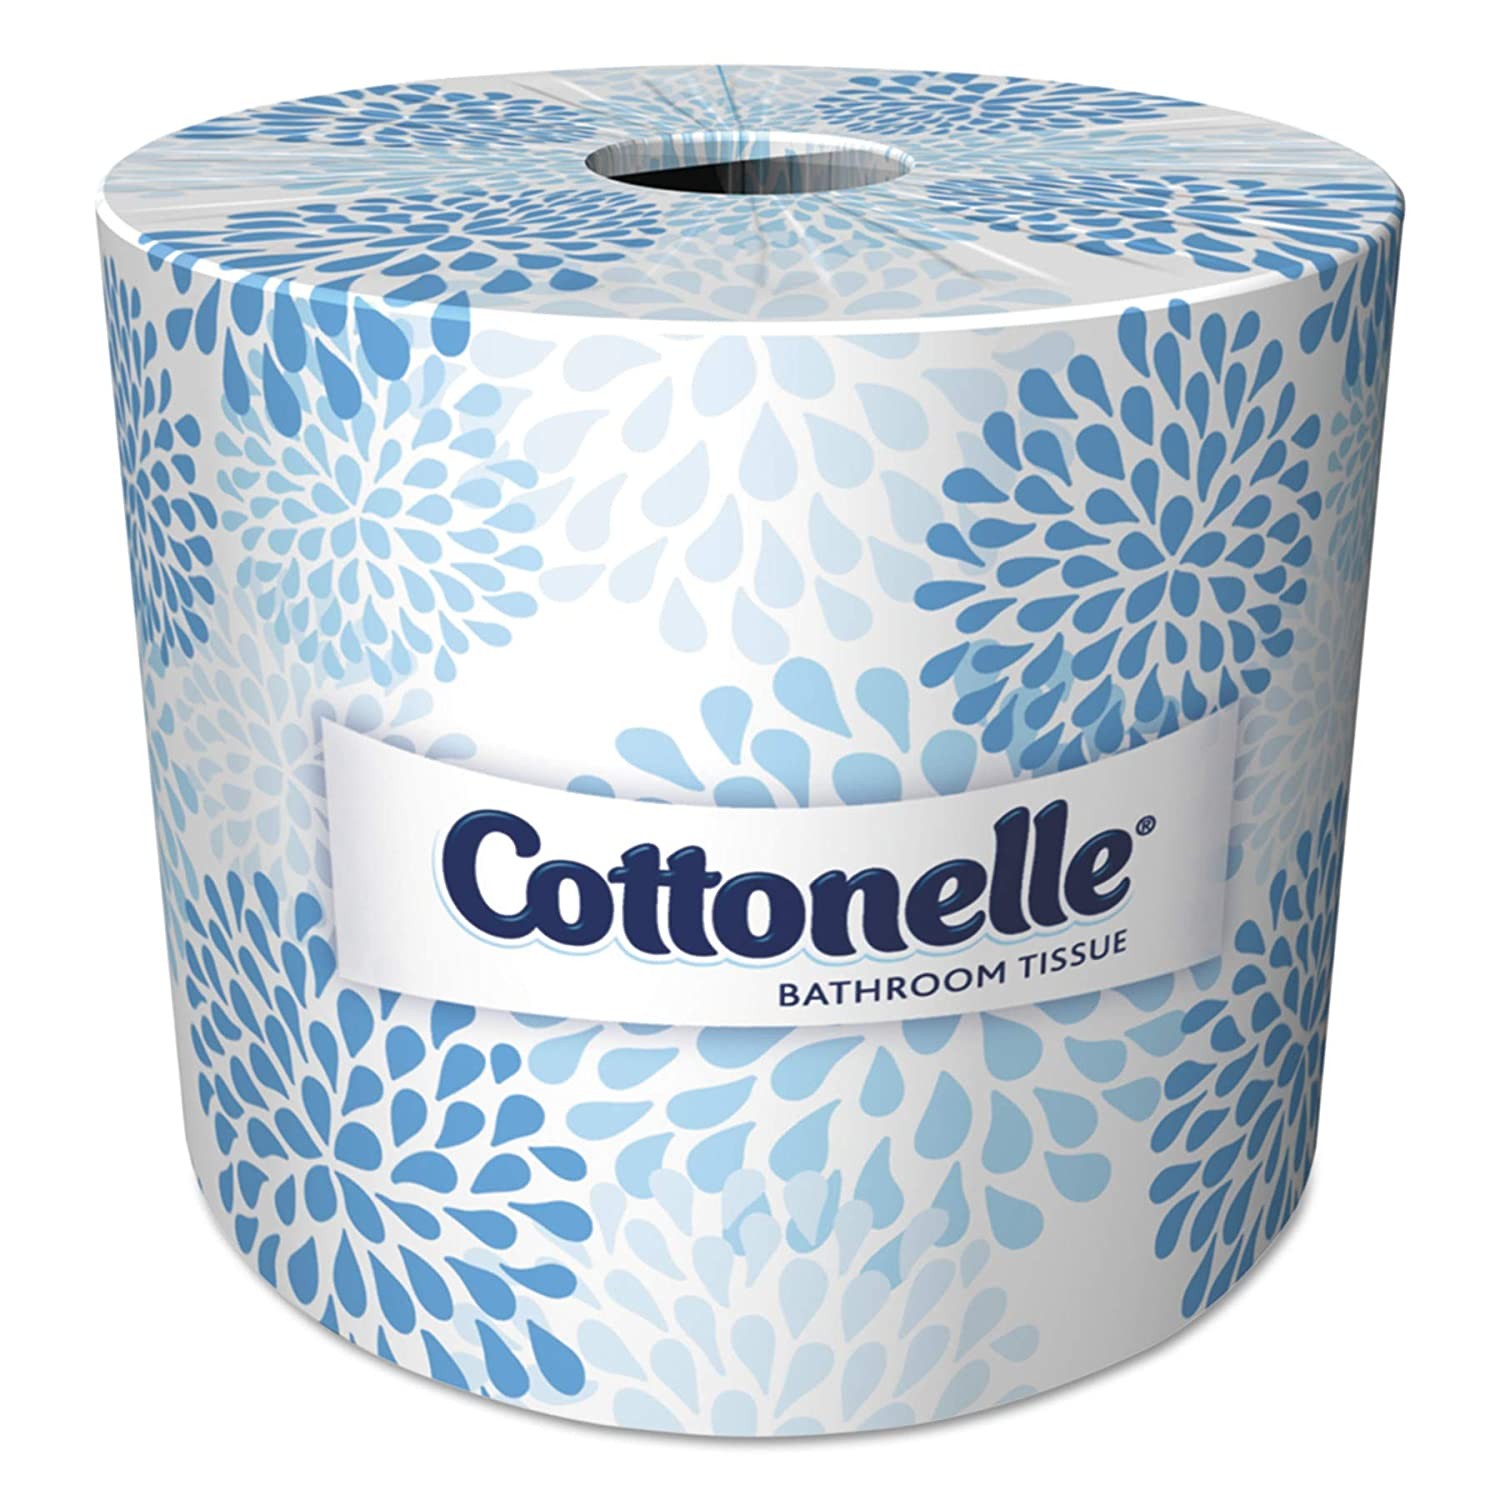 Cottonelle 13135 Two Ply Bathroom Tissue 451 Sheets per Roll Case of 20 Rolls